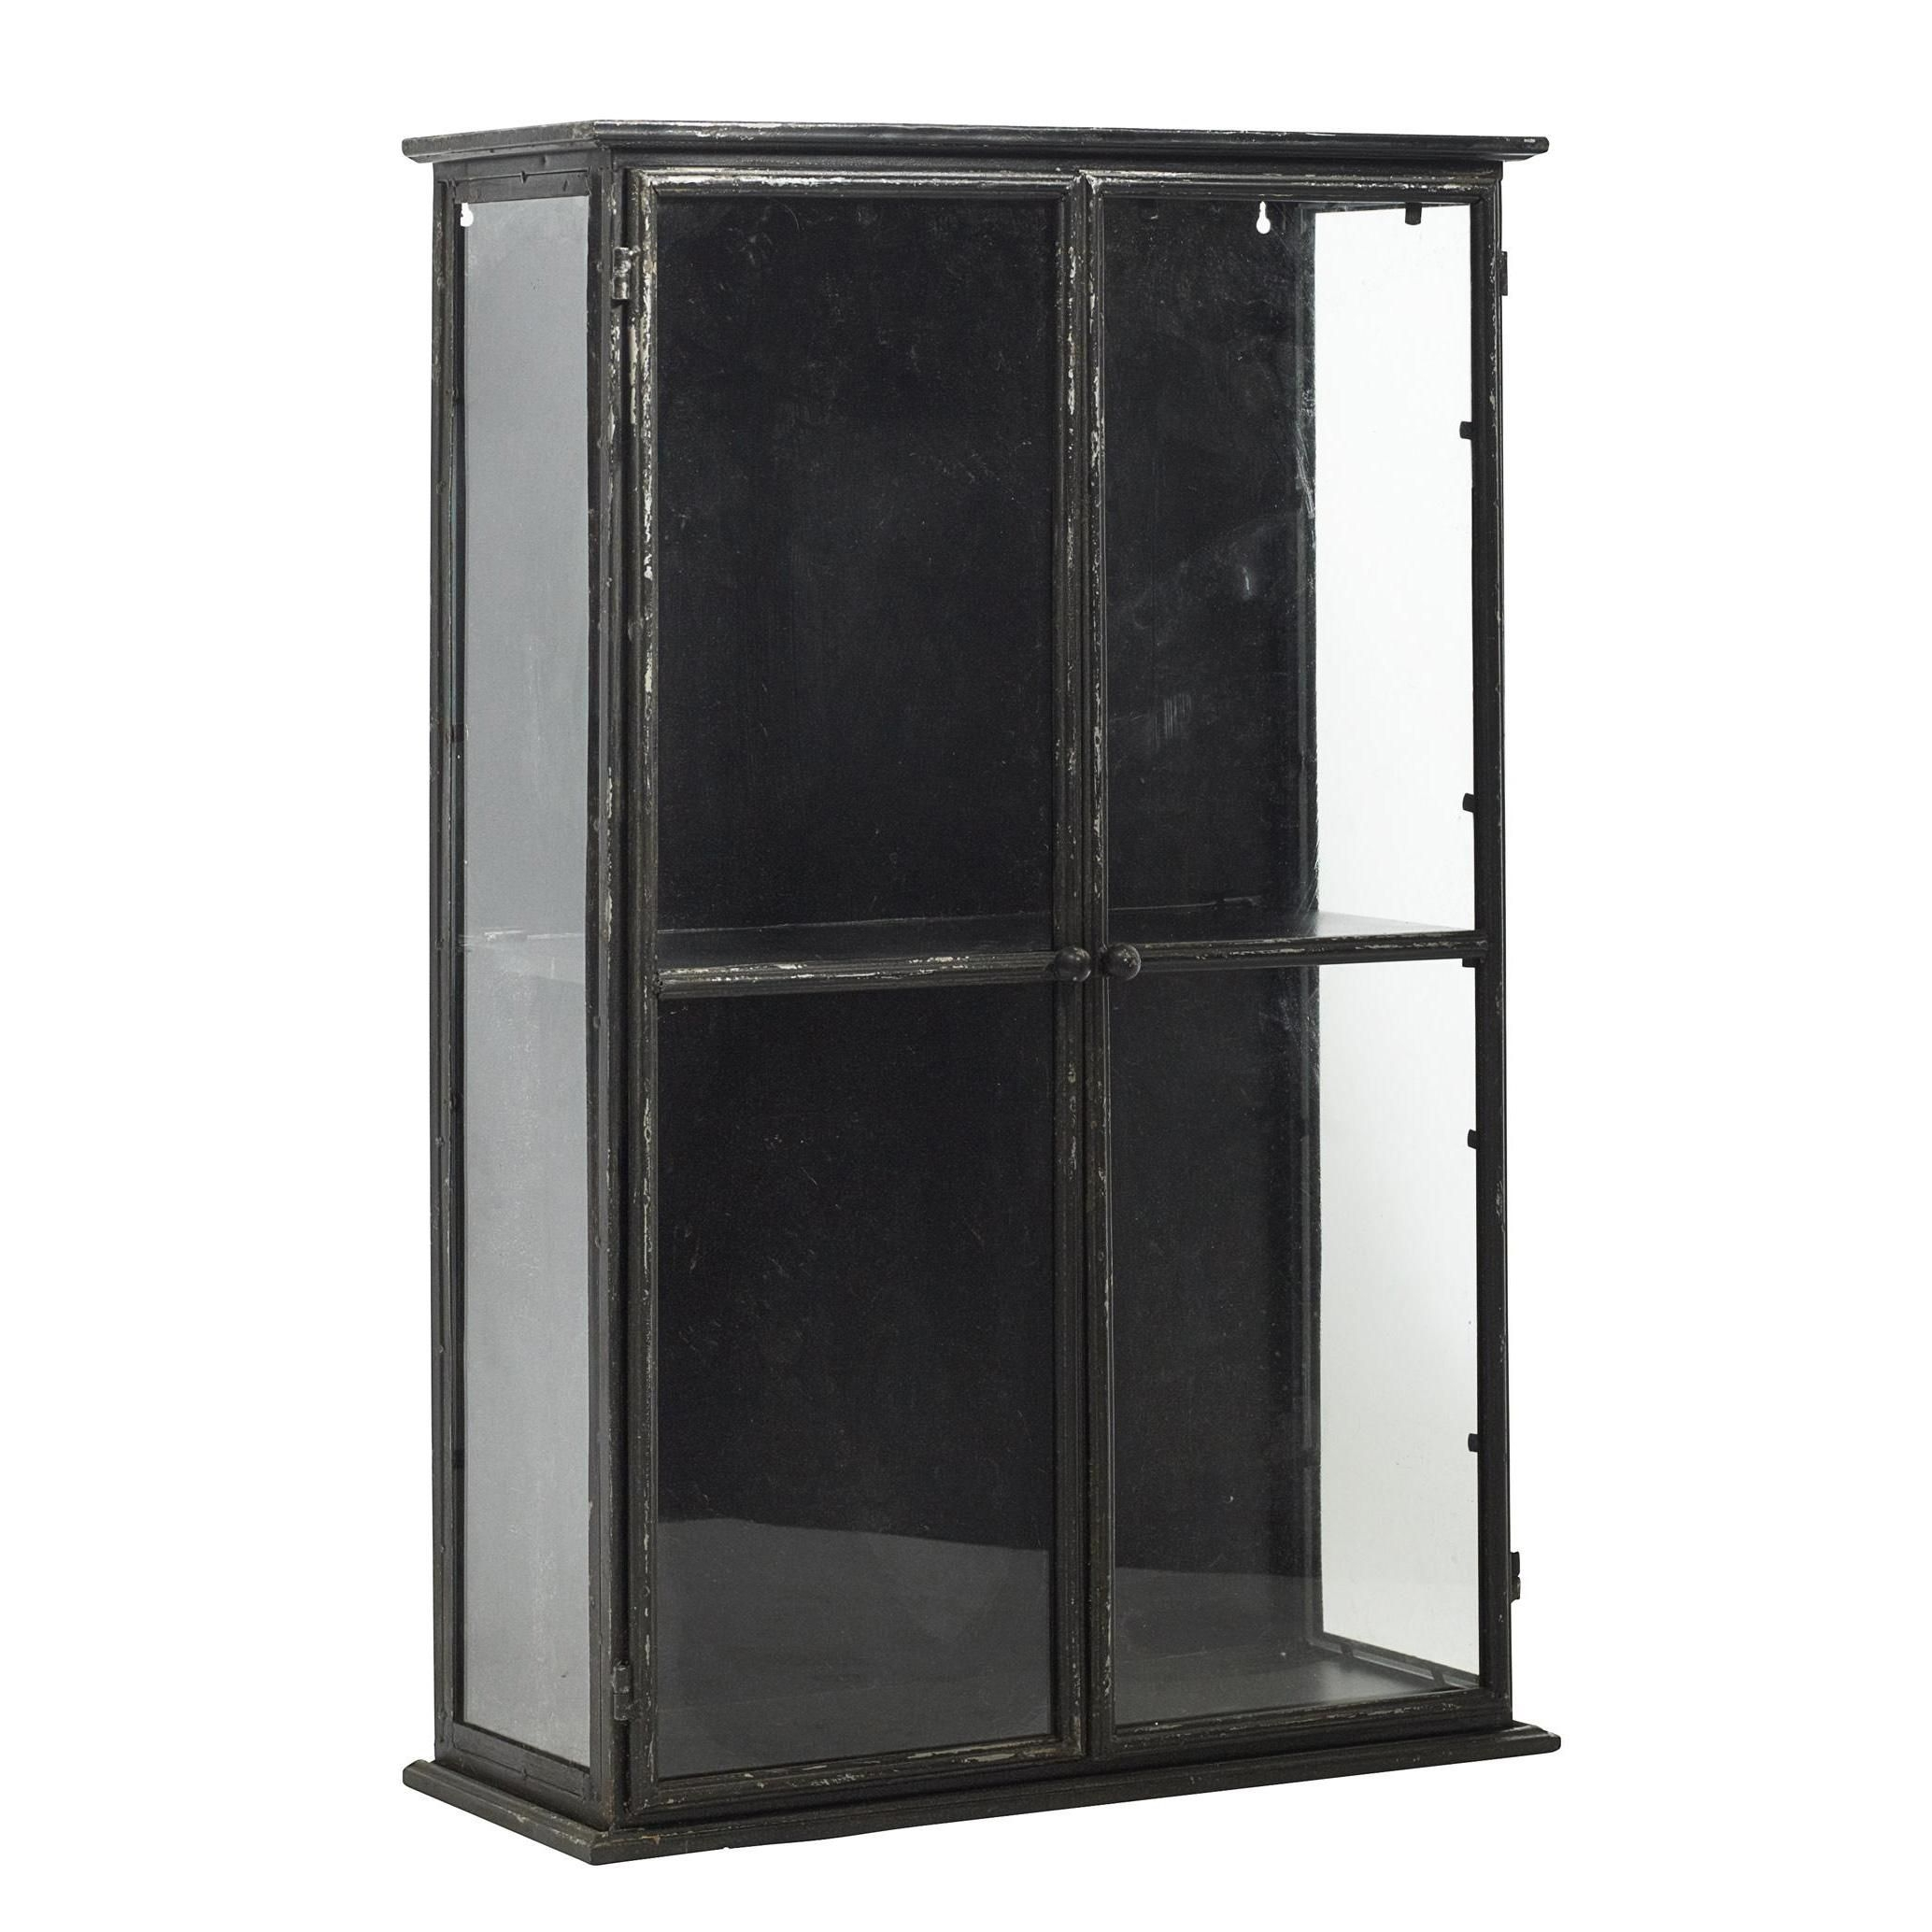 Delicieux Metal Cabinet With Glass Doors